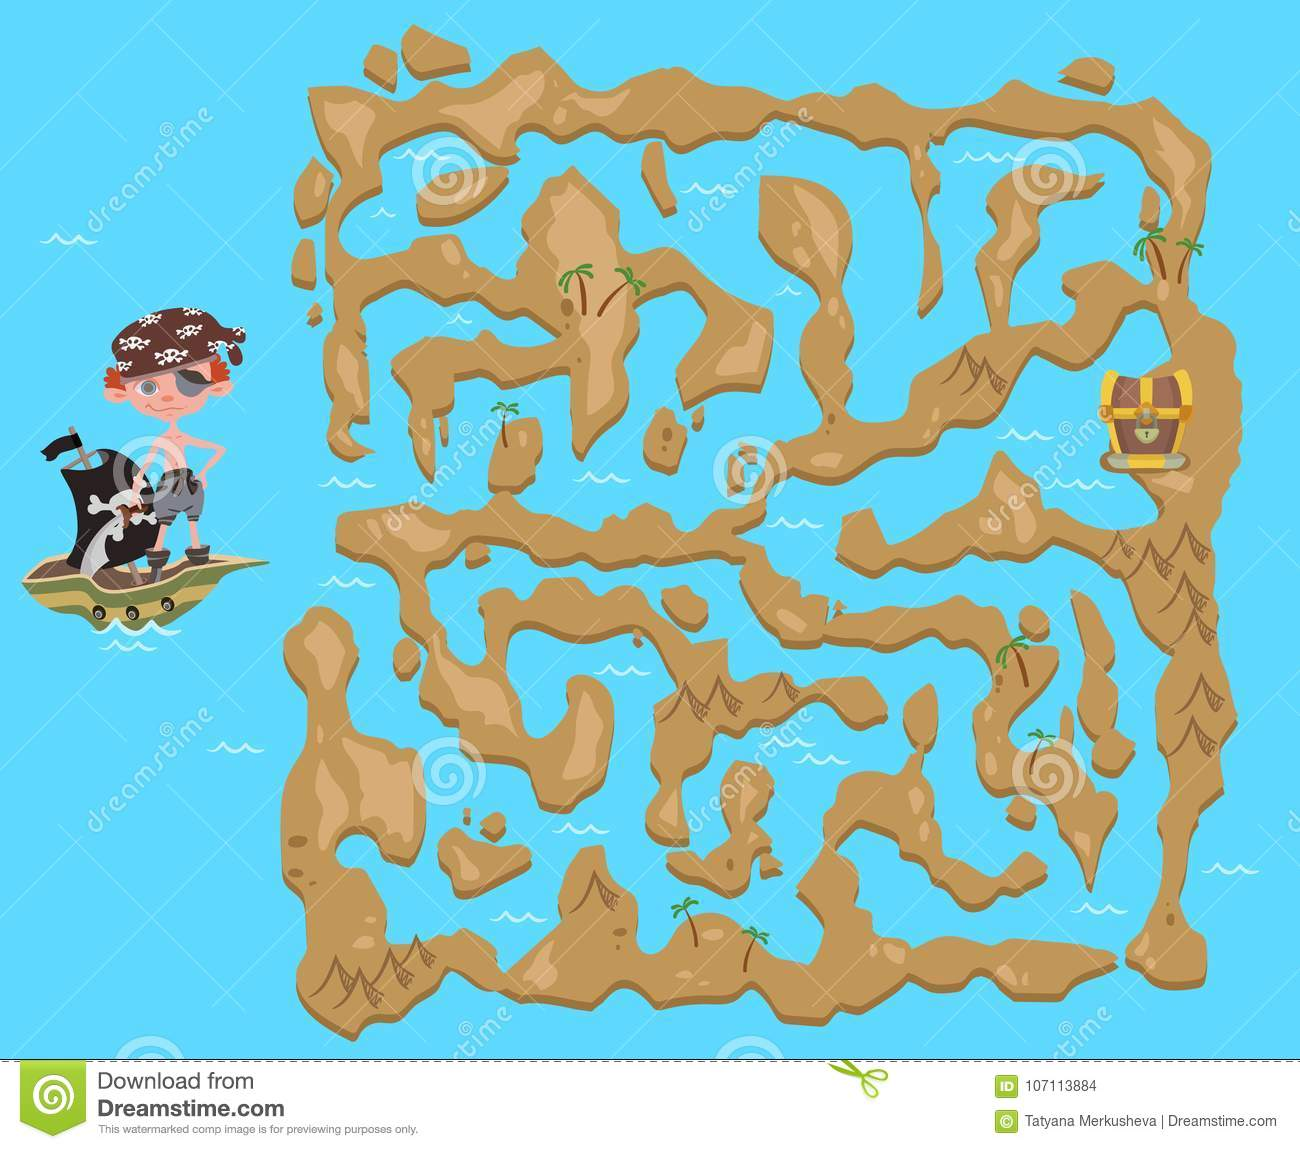 Children\'s Treasure Map Children`s Maze. Pirate Treasure Map. Puzzle Game For Kids, Vector